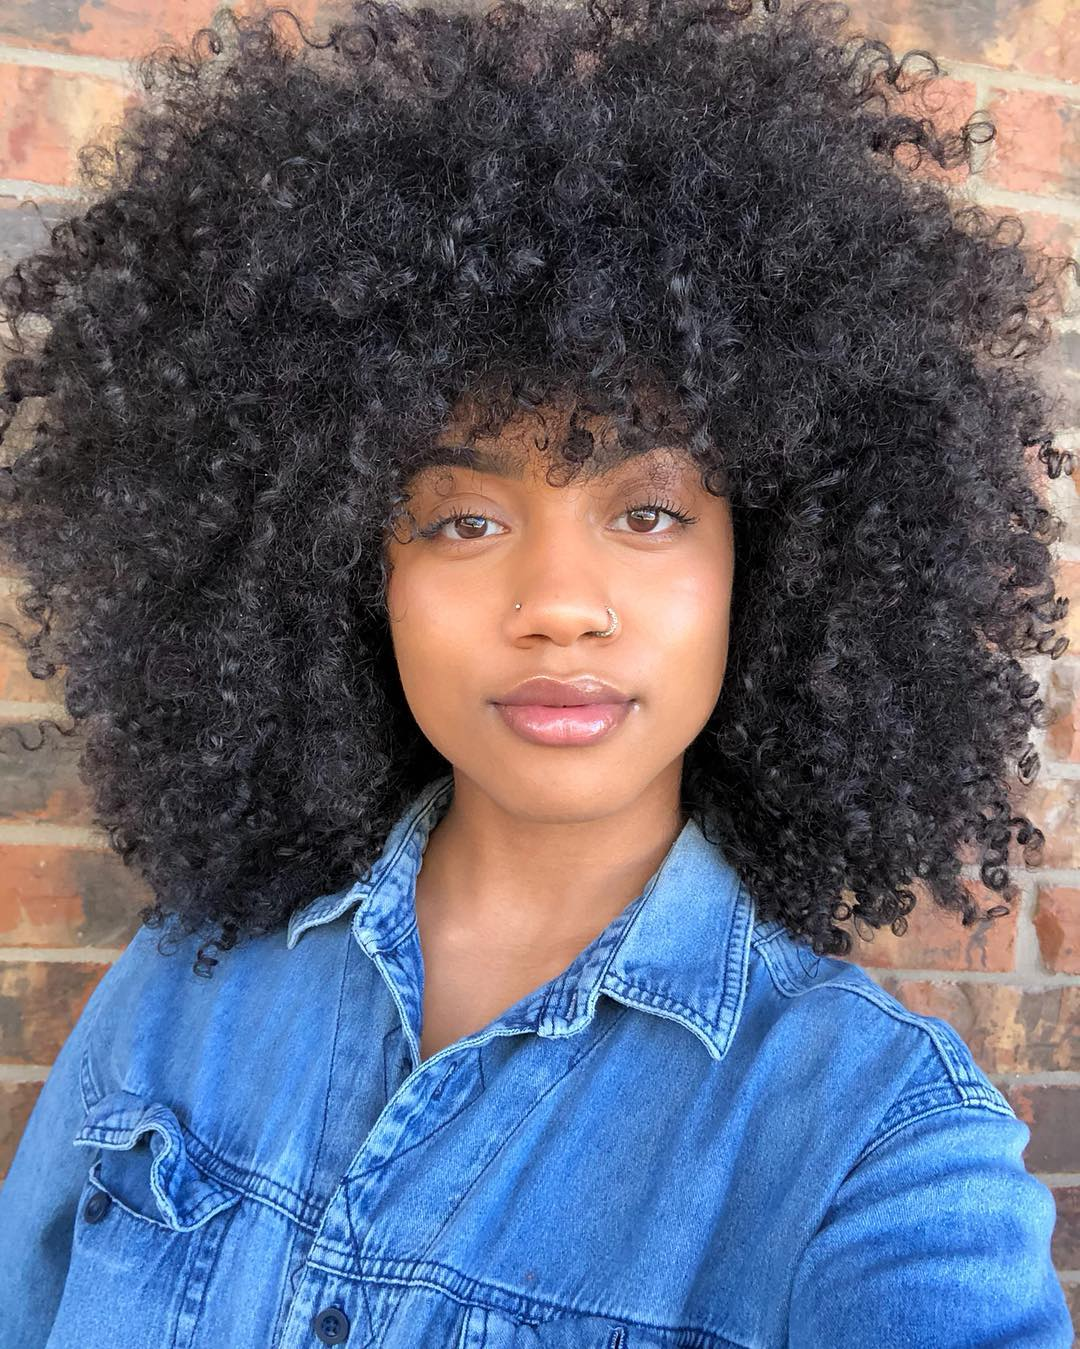 45 Classy Natural Hairstyles for Black Girls to Turn Heads ...